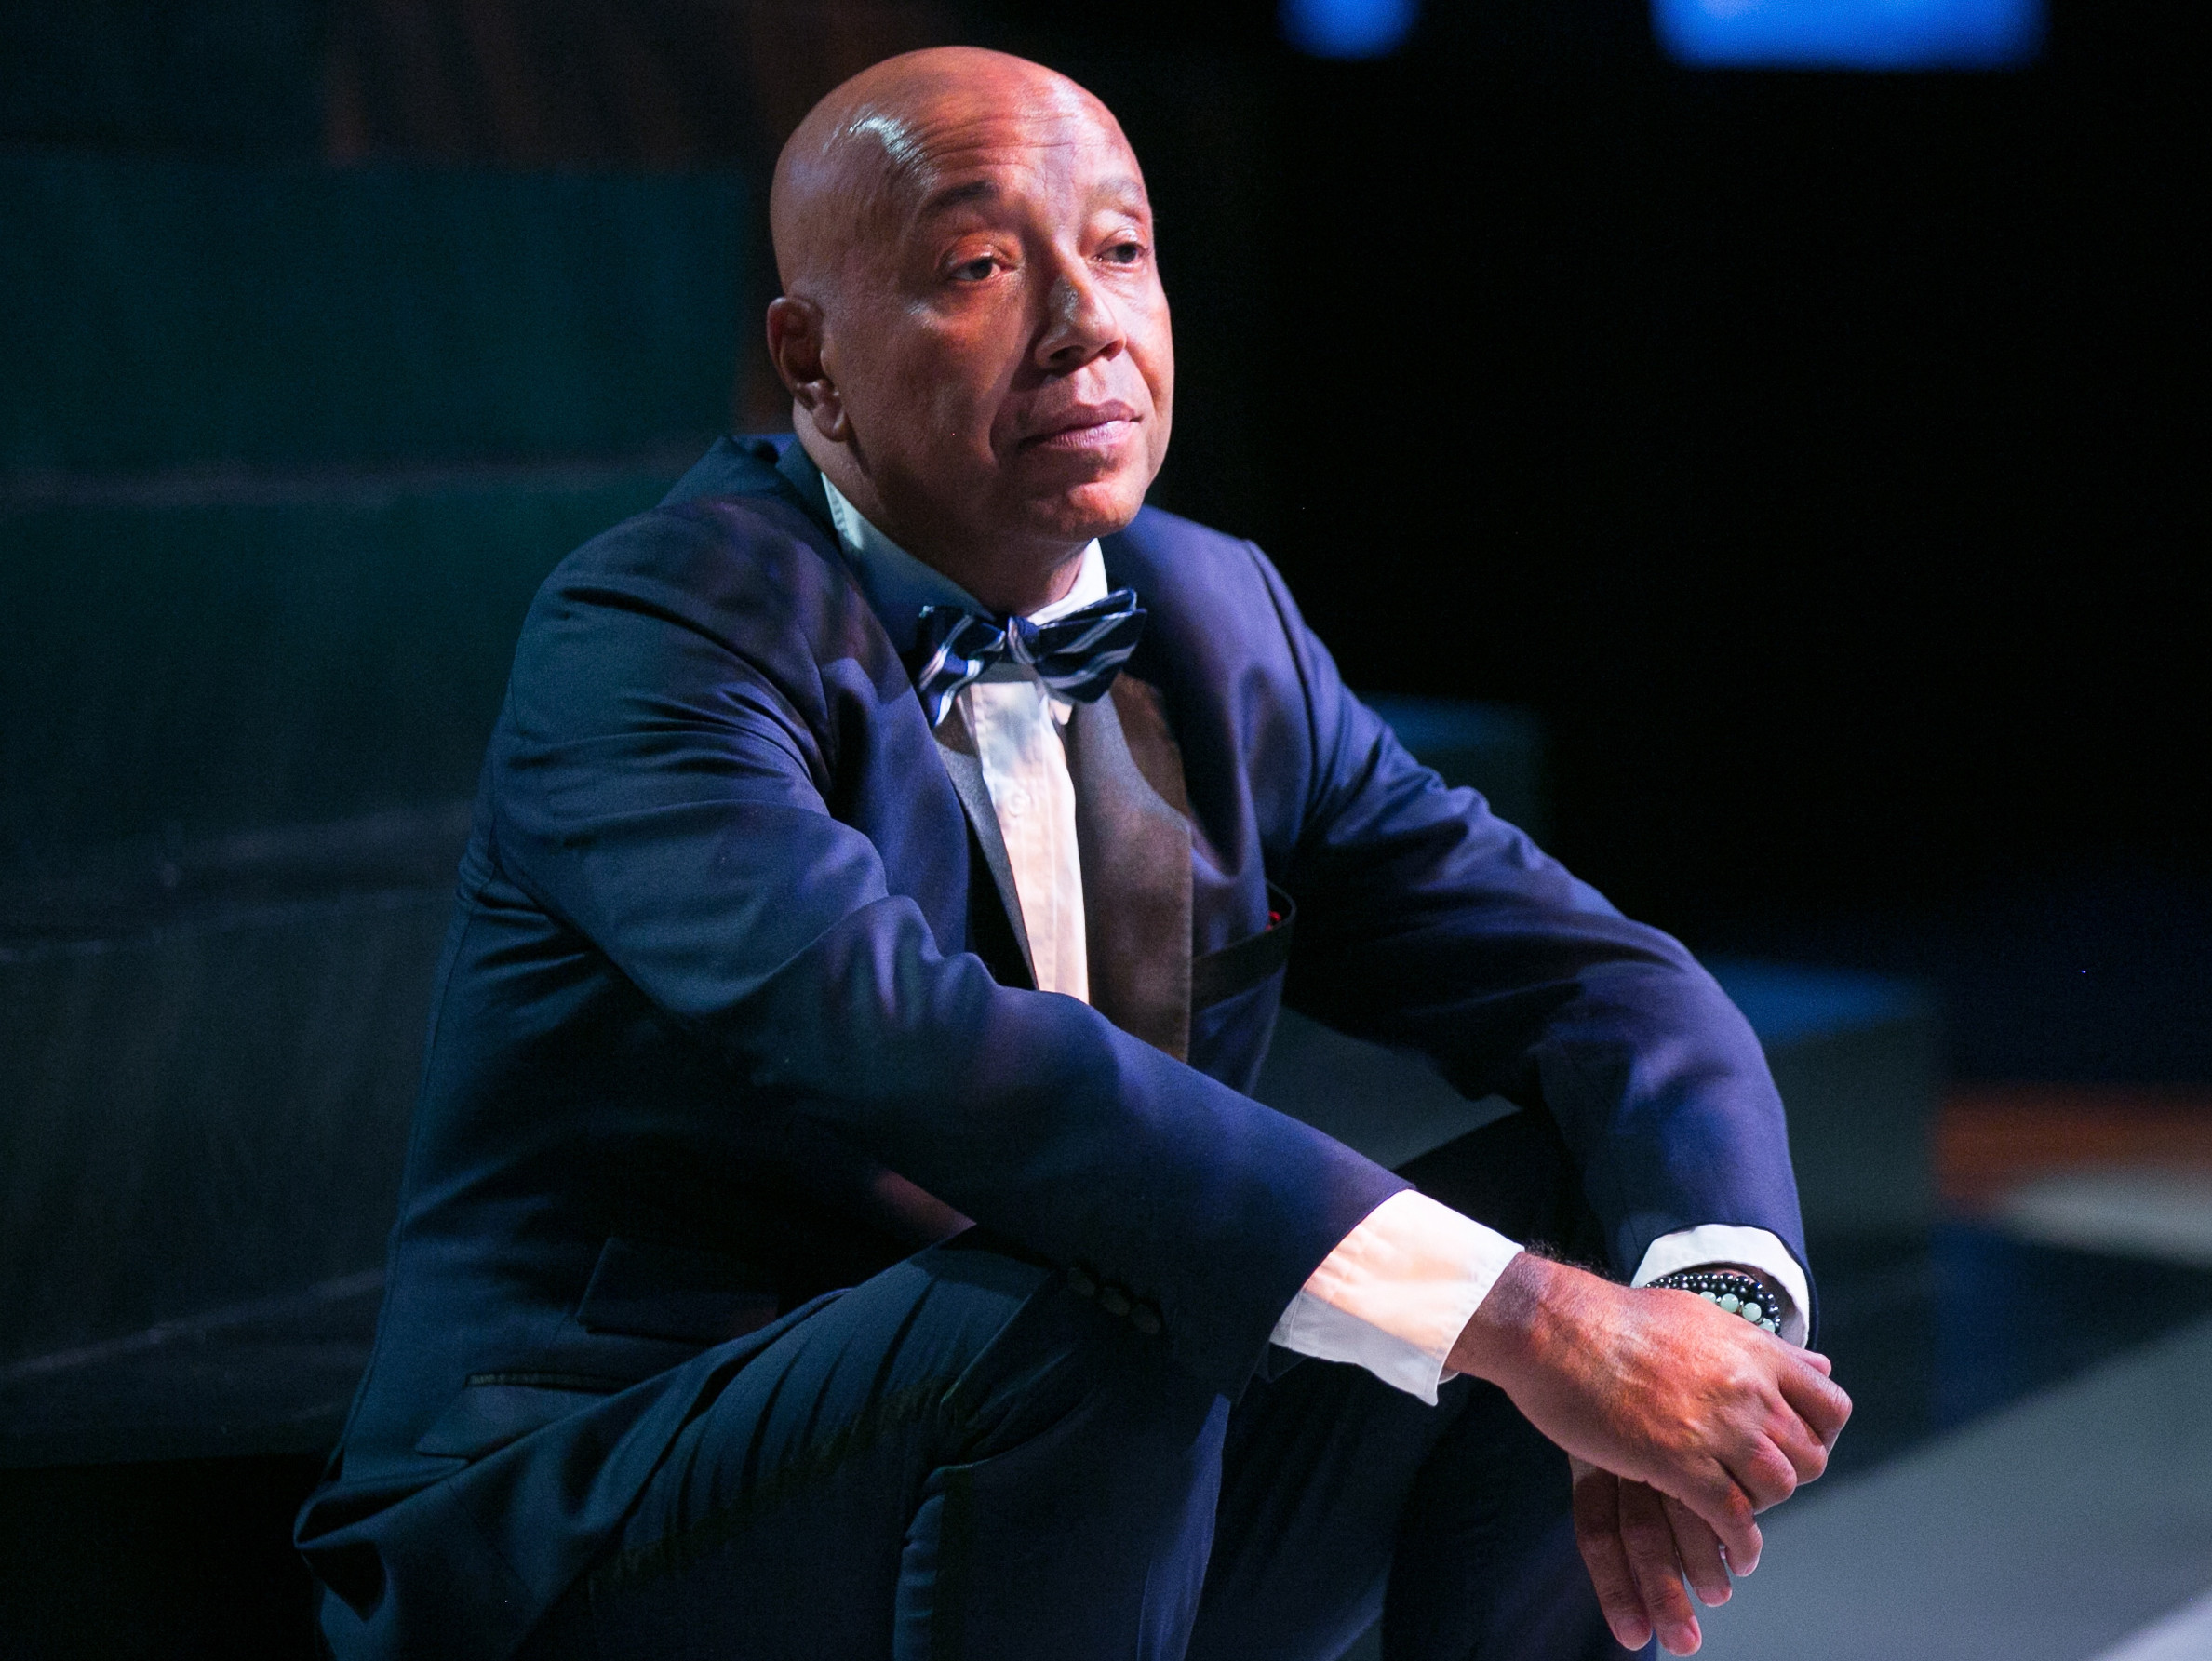 #DXCLUSIVE: Russell Simmons Responds To Unpaid Royalties Claim